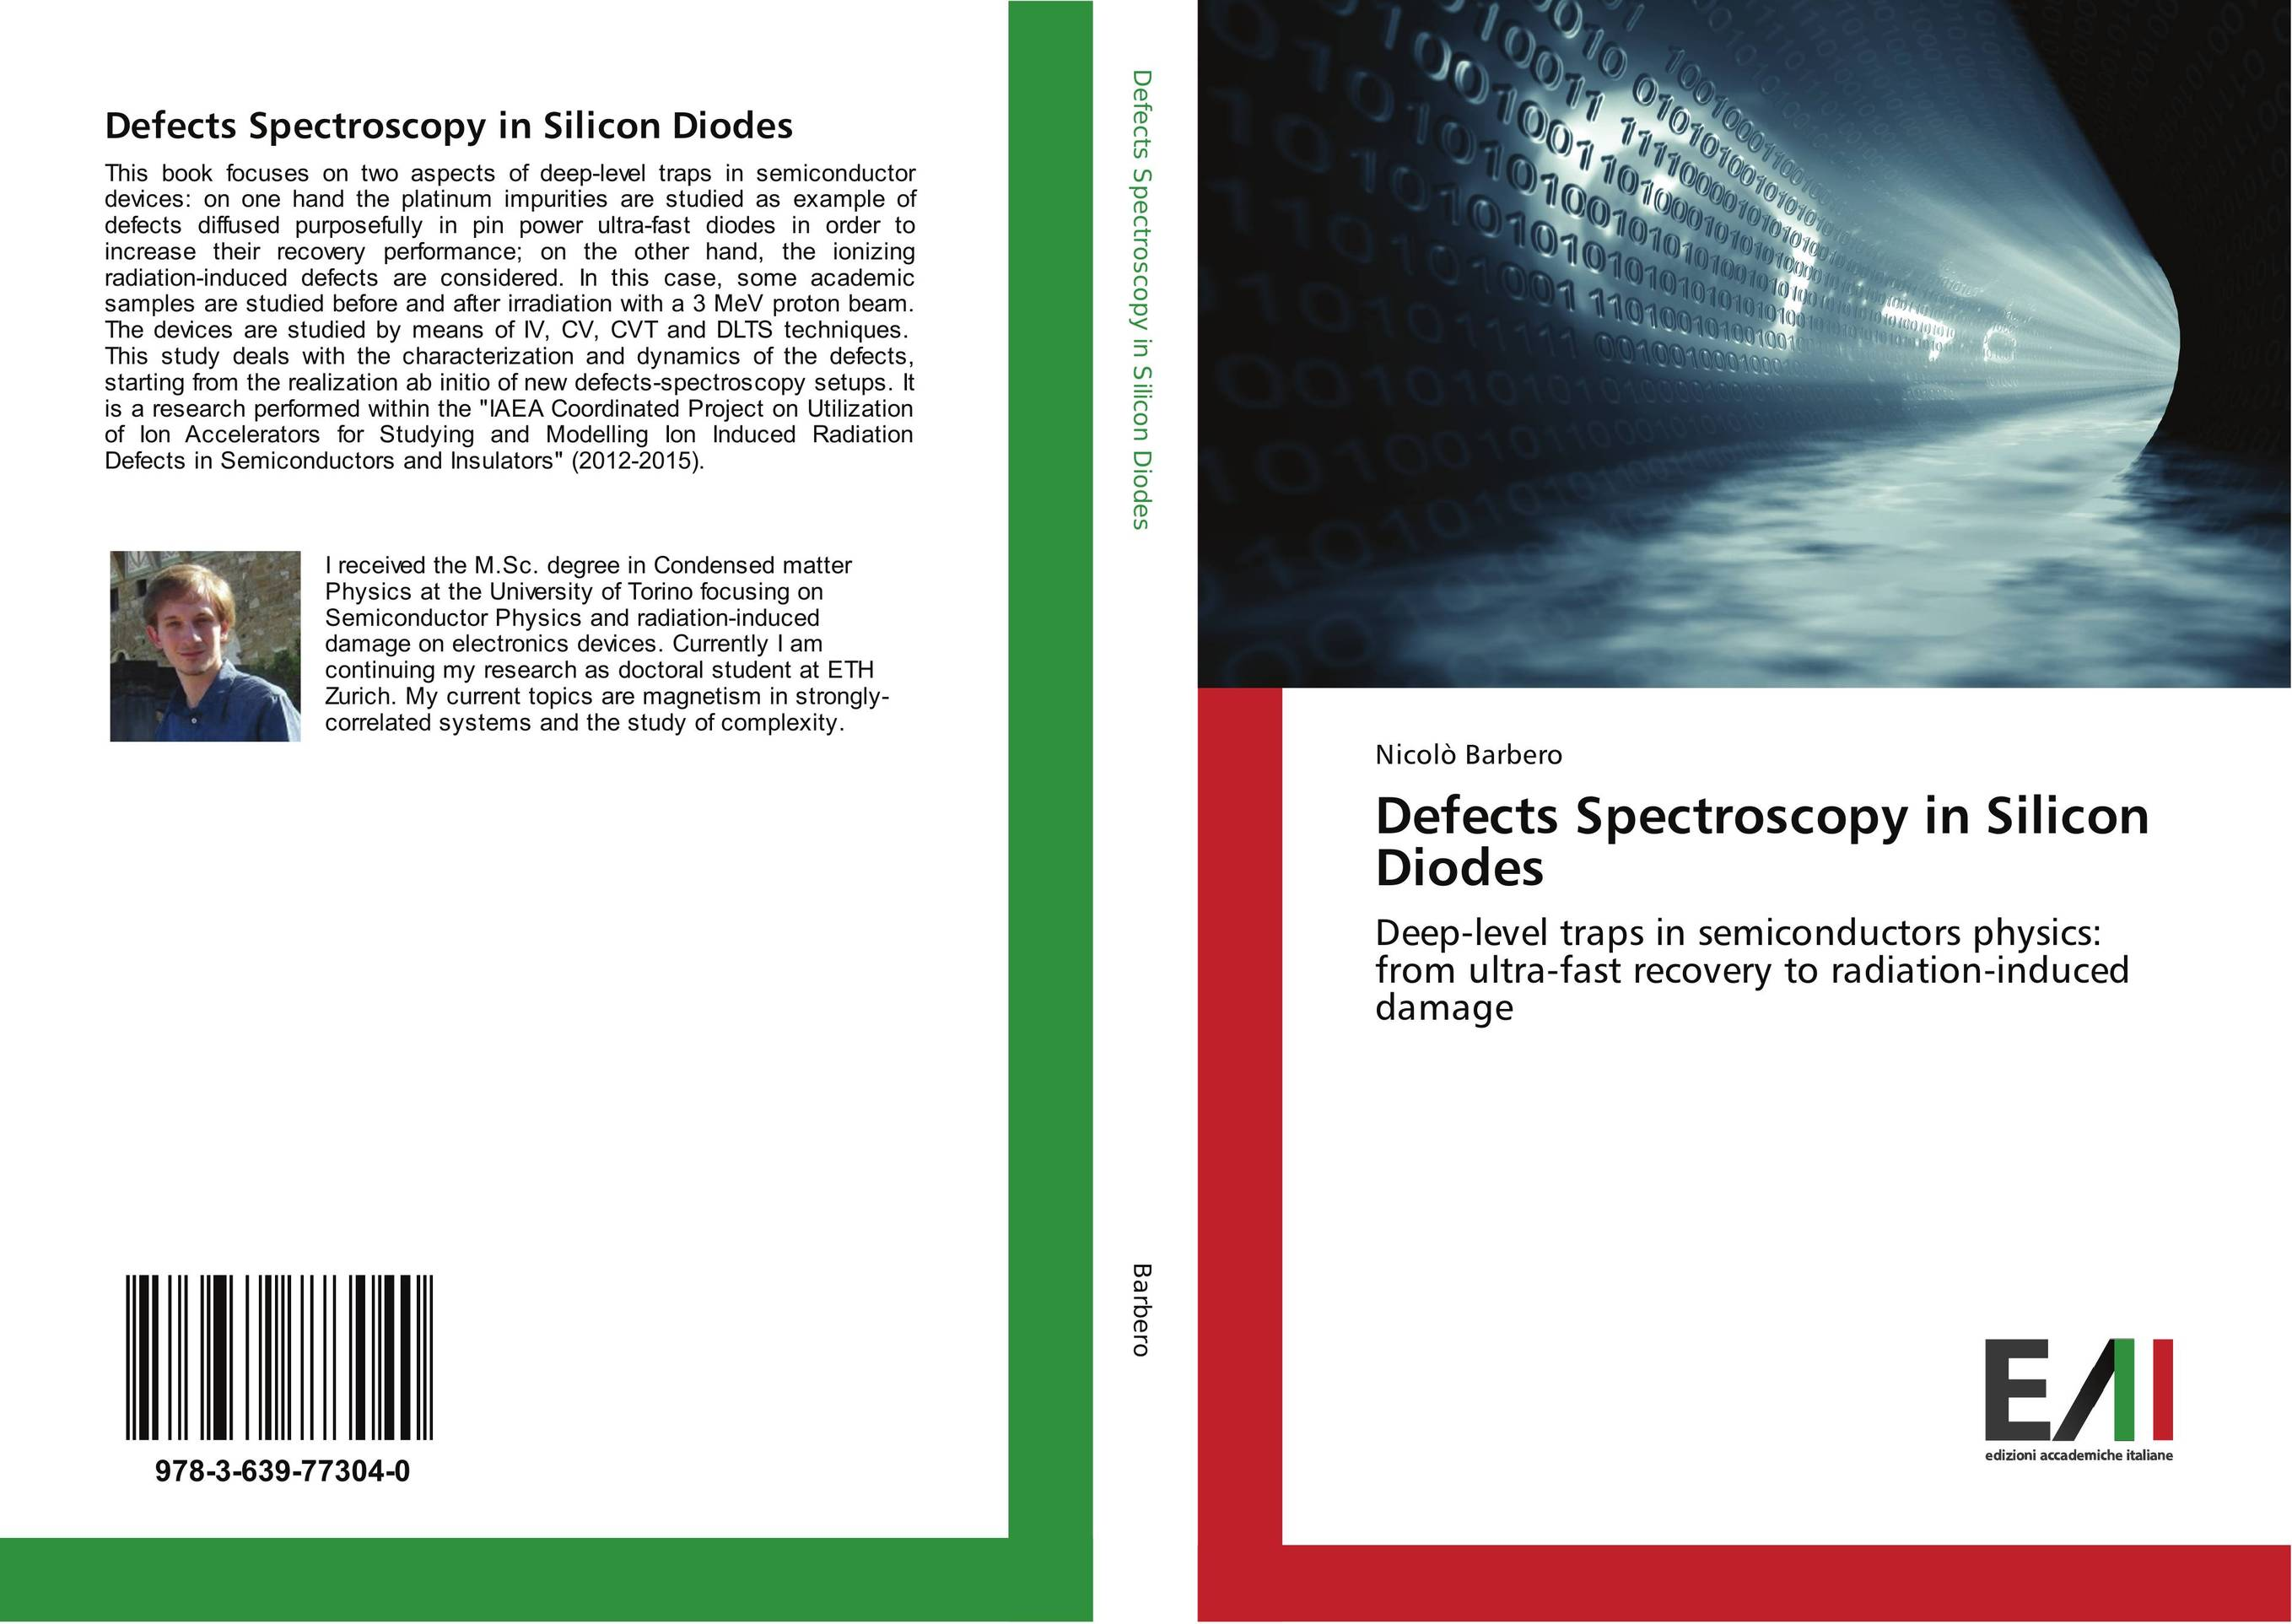 Defects Spectroscopy in Silicon Diodes handbook of isolation and characterization of impurities in pharmaceuticals 5